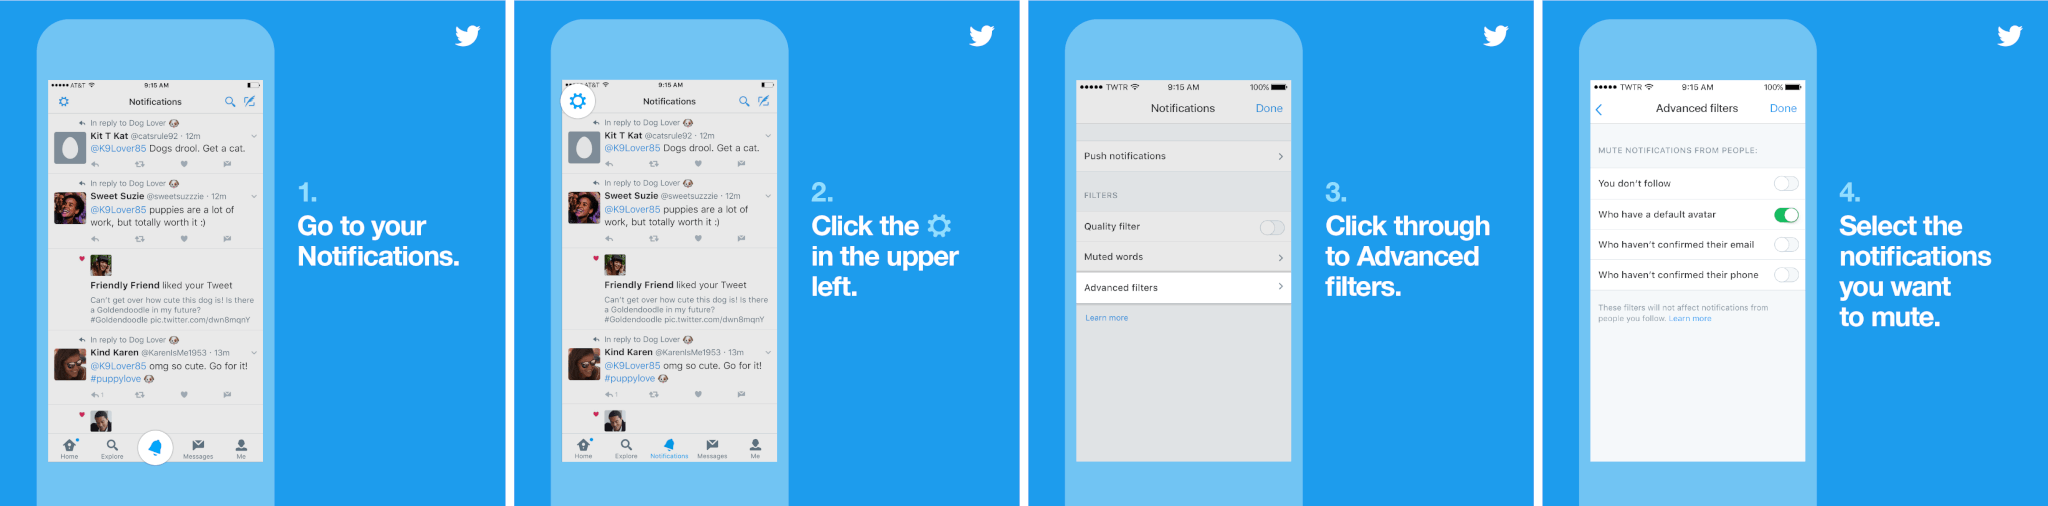 Twitter adds new filtering in notifications to block tweets from those with a default profile picture, unverified email and/or phone number.